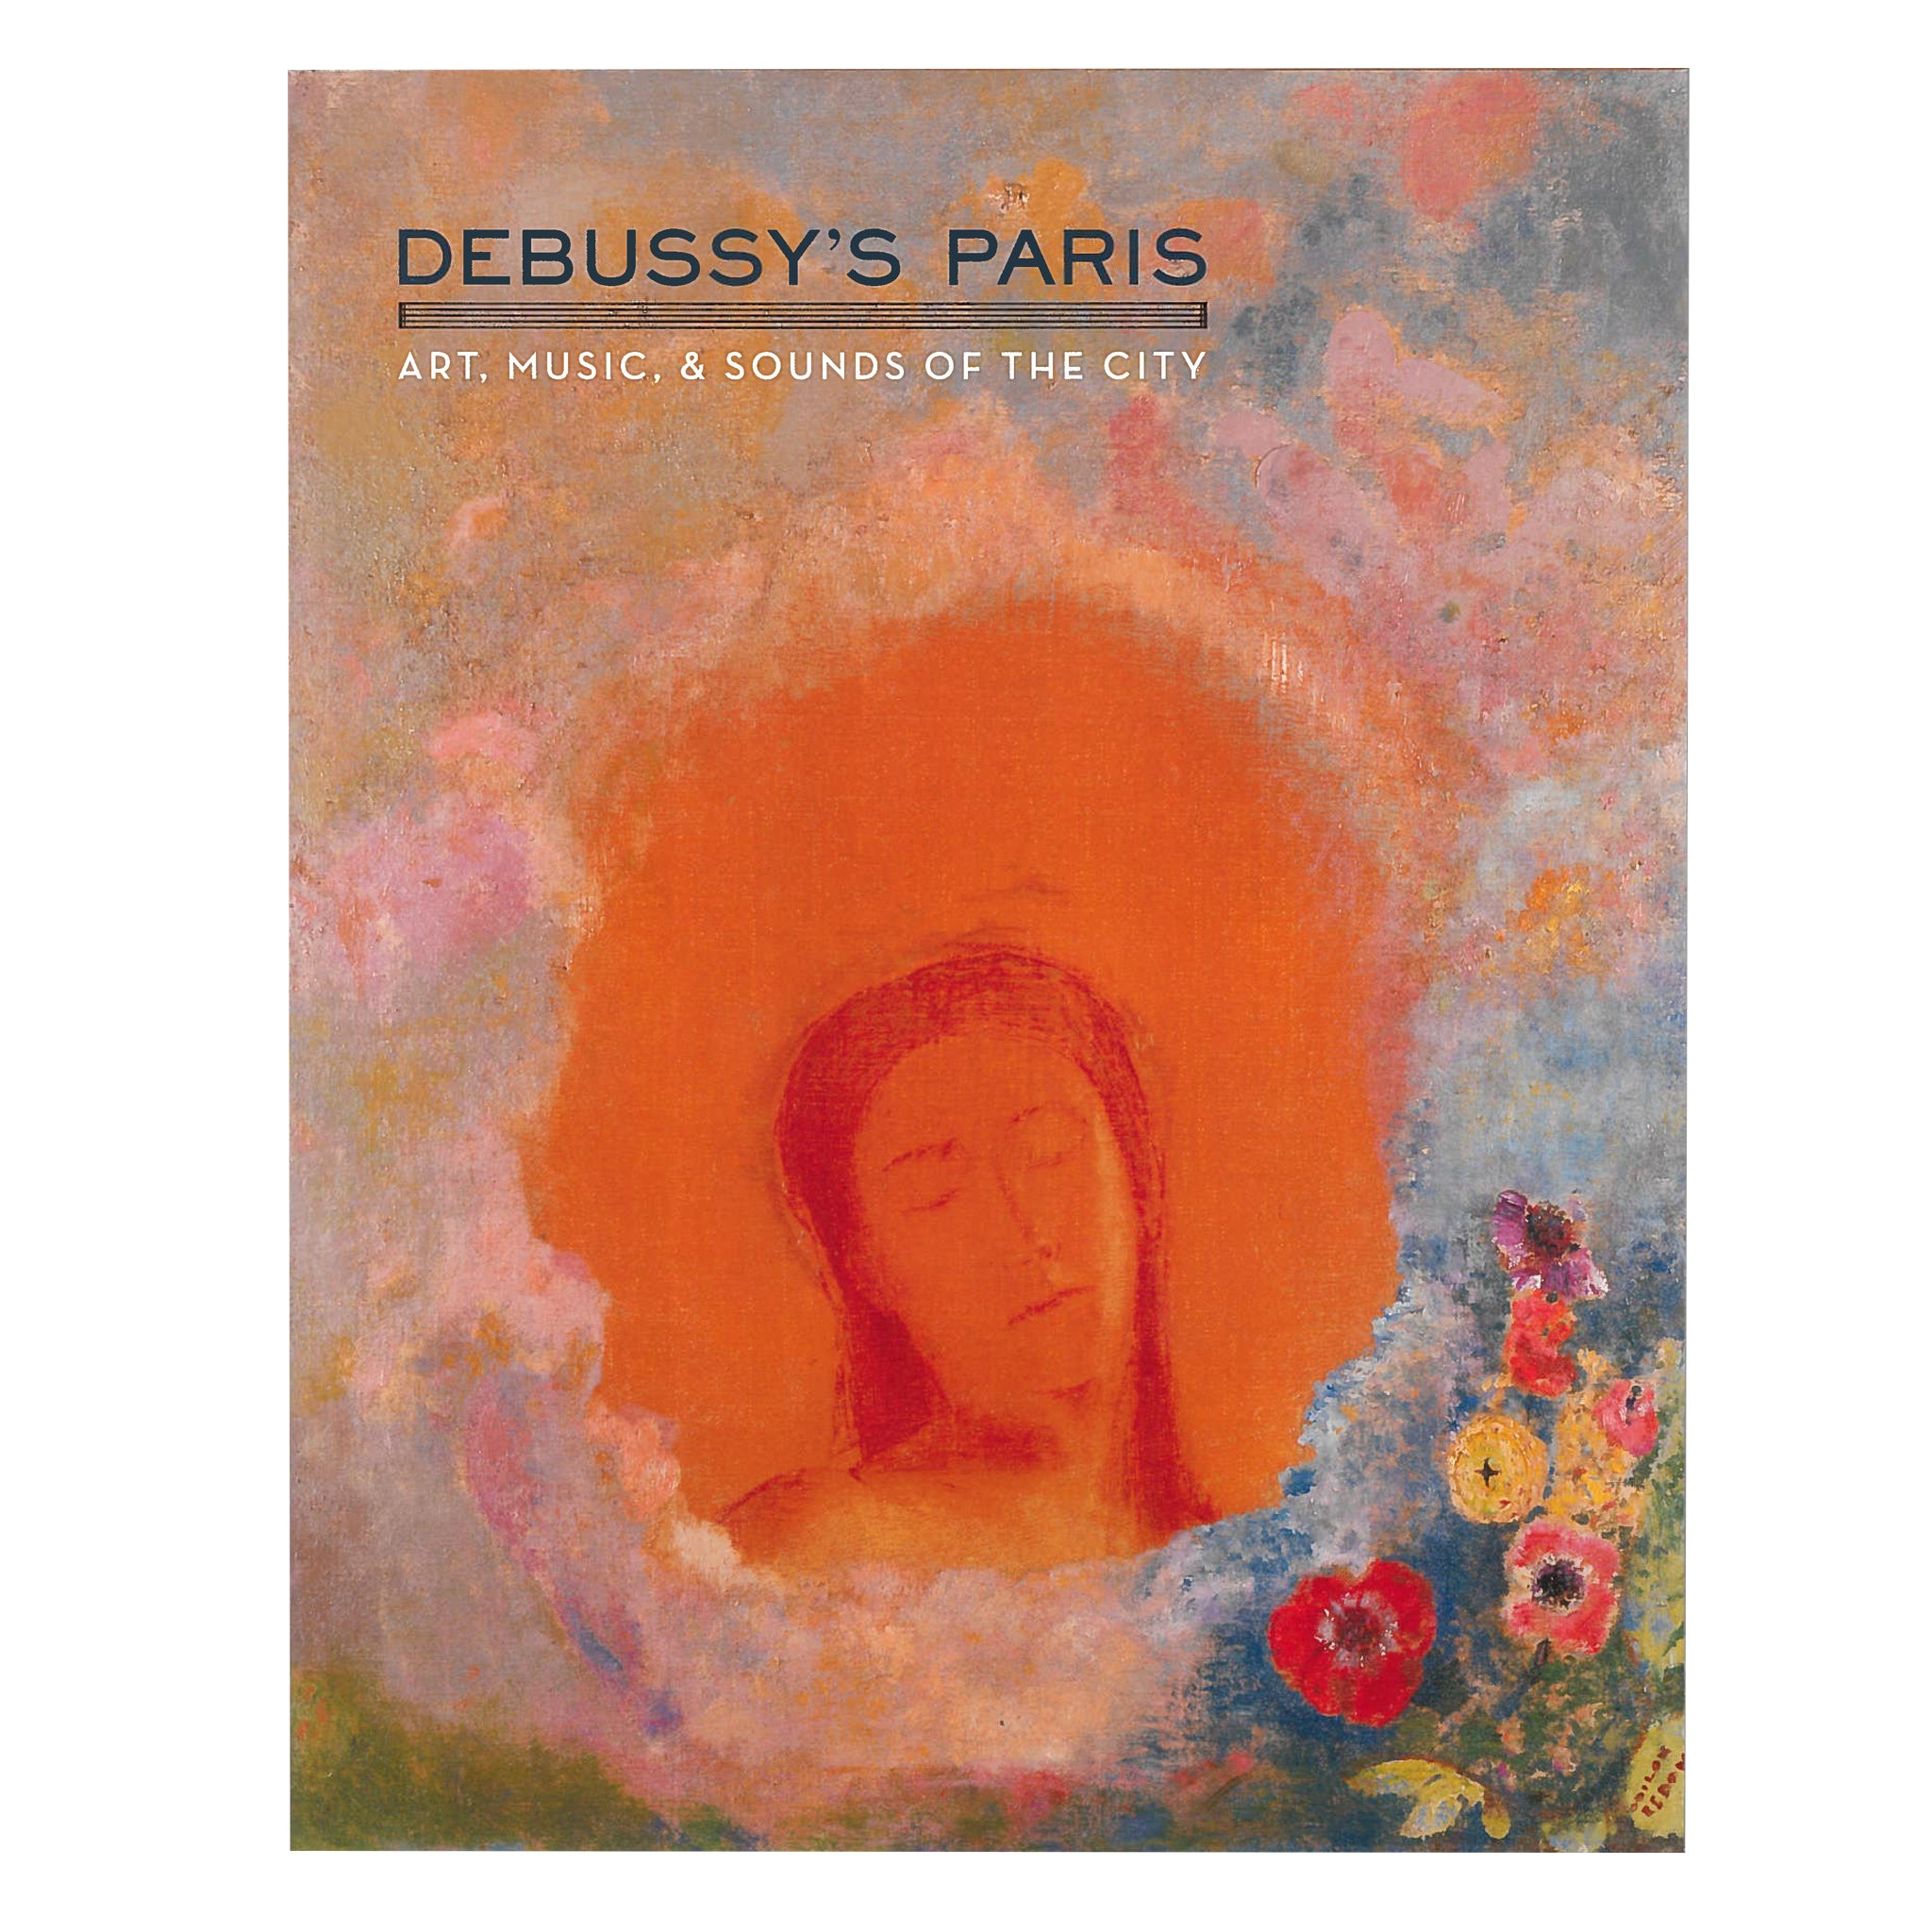 Debussy's Paris: Art, Music & Sounds of the City Claude Debussy Belle Époque Epoque Paris exhibit catalog exhibition catalogue Smith College Musem of Art SCMA